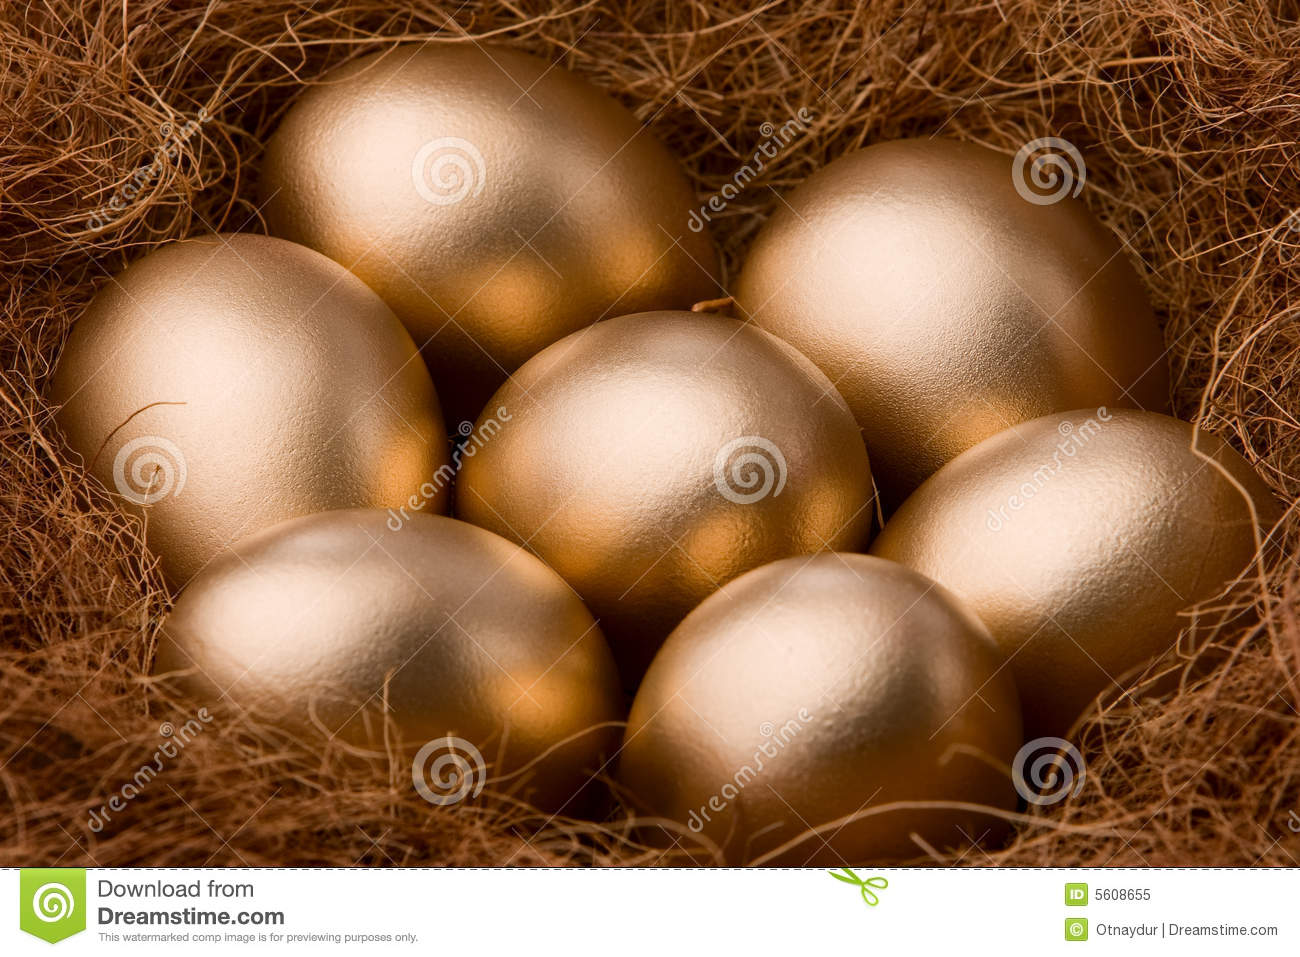 Seven golden egg